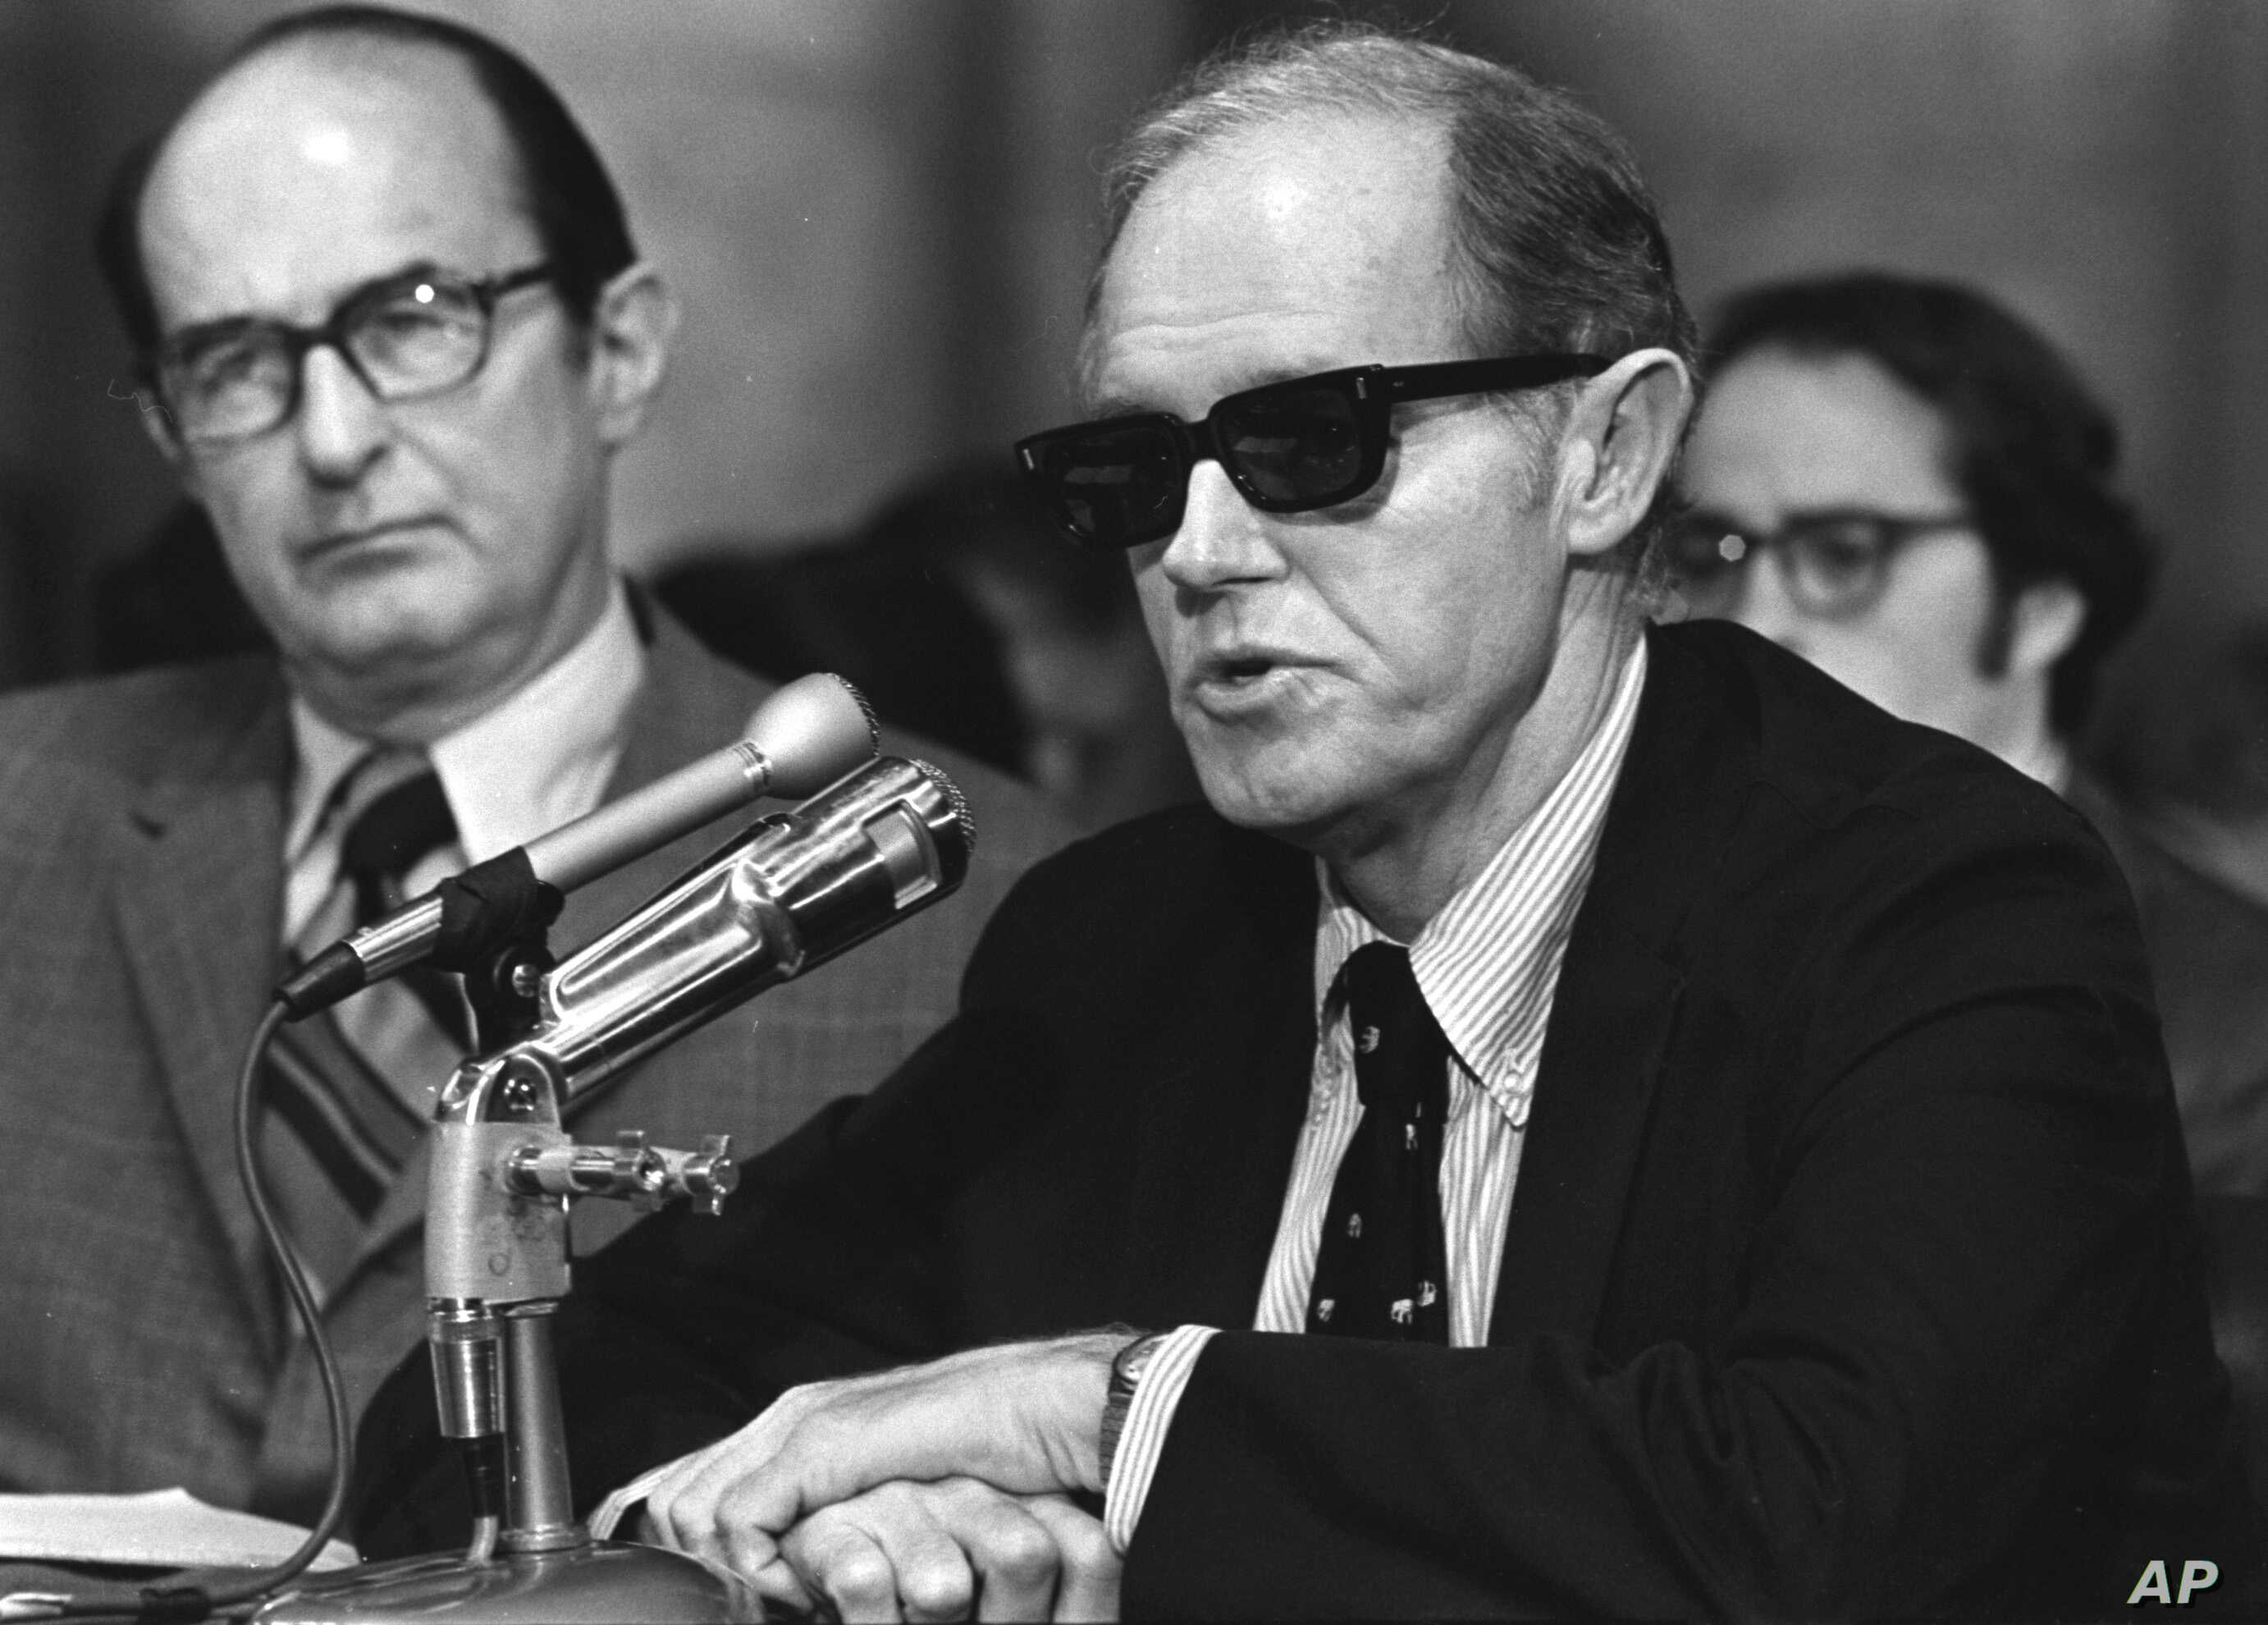 FILE - Convicted Watergate conspiritor E. Howard Hunt, wearing dark glasses, begins his seconds day of testimony before the Senate Watergate Committee in this Sept. 25, 1973 photo in Washington, D.C.  Hunt helped organize the Watergate break-in that ...